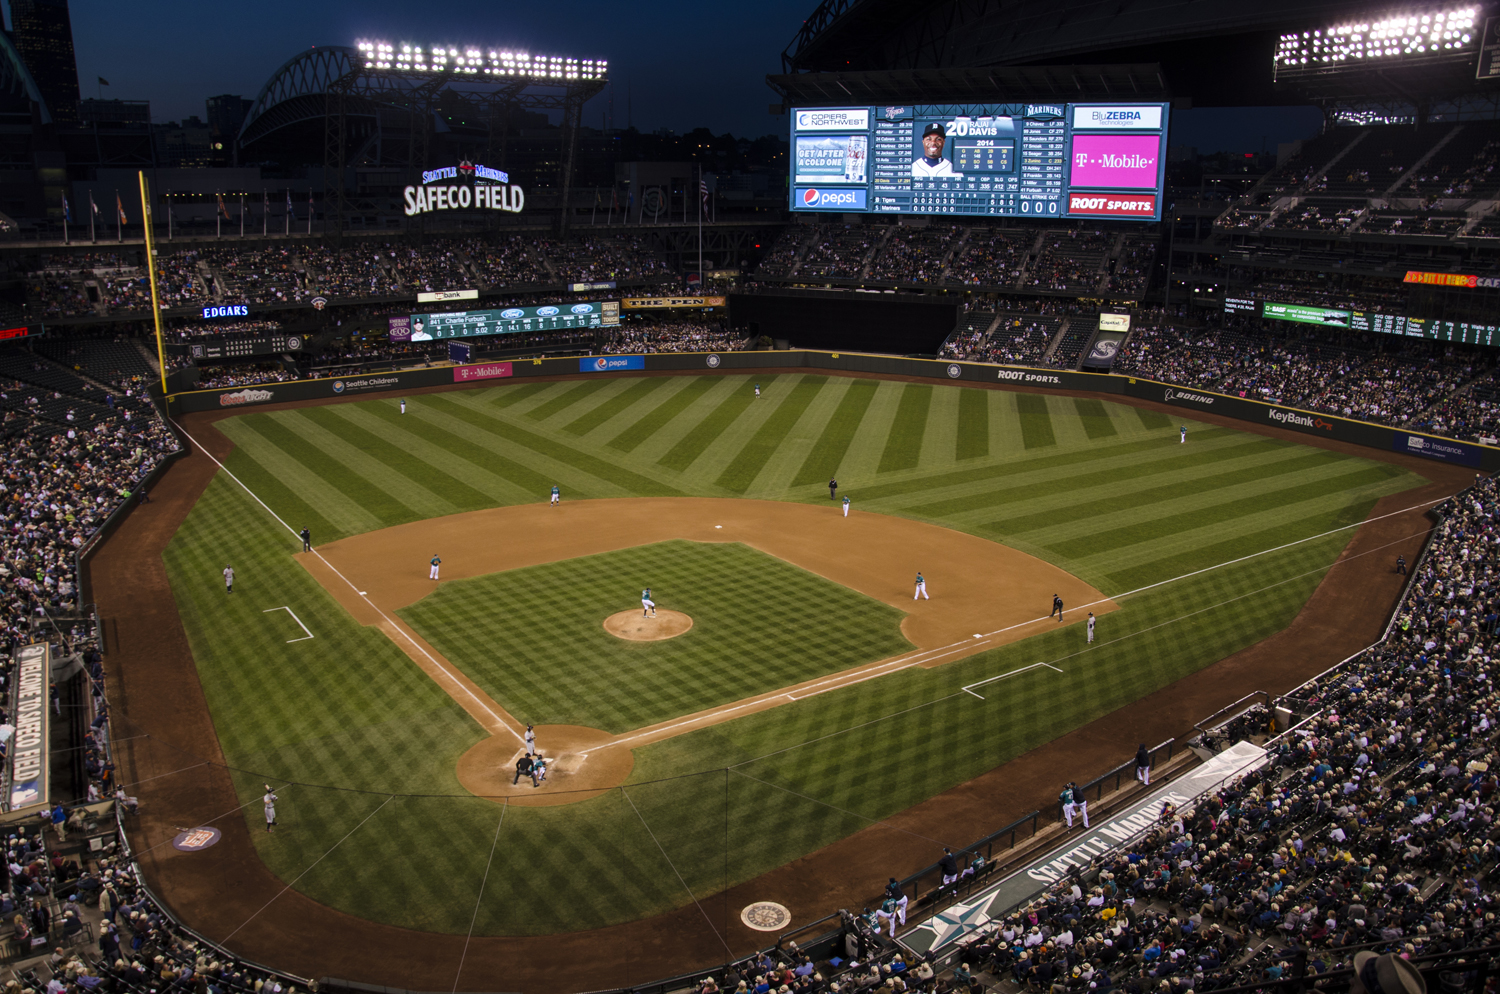 Seattle Mariners vs Detroit Tigers, Major League Baseball MLB game at Safeco Field in Seattle, Washington